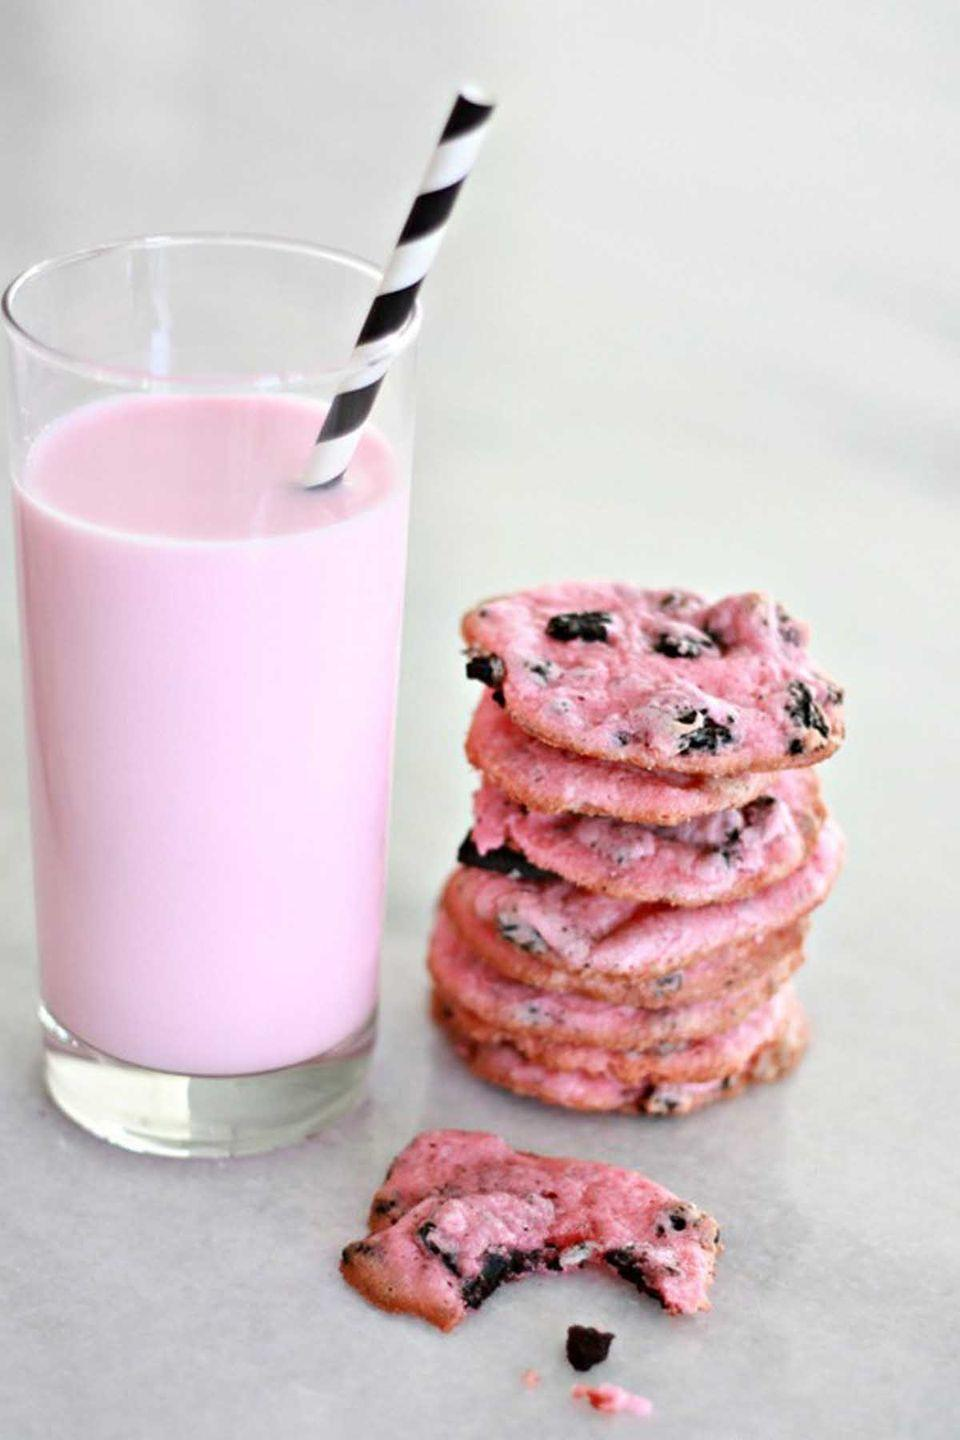 "<p><span class=""redactor-invisible-space"">The combination of Oreo and cheesecake flavors is what makes these pink cookies taste amazing. </span><br></p><p><strong>Get the recipe at <a href=""http://www.nestofposies-blog.com/2015/01/oreo-cheesecake-cookies/"" rel=""nofollow noopener"" target=""_blank"" data-ylk=""slk:Nest of Posies"" class=""link rapid-noclick-resp"">Nest of Posies</a>. </strong></p>"